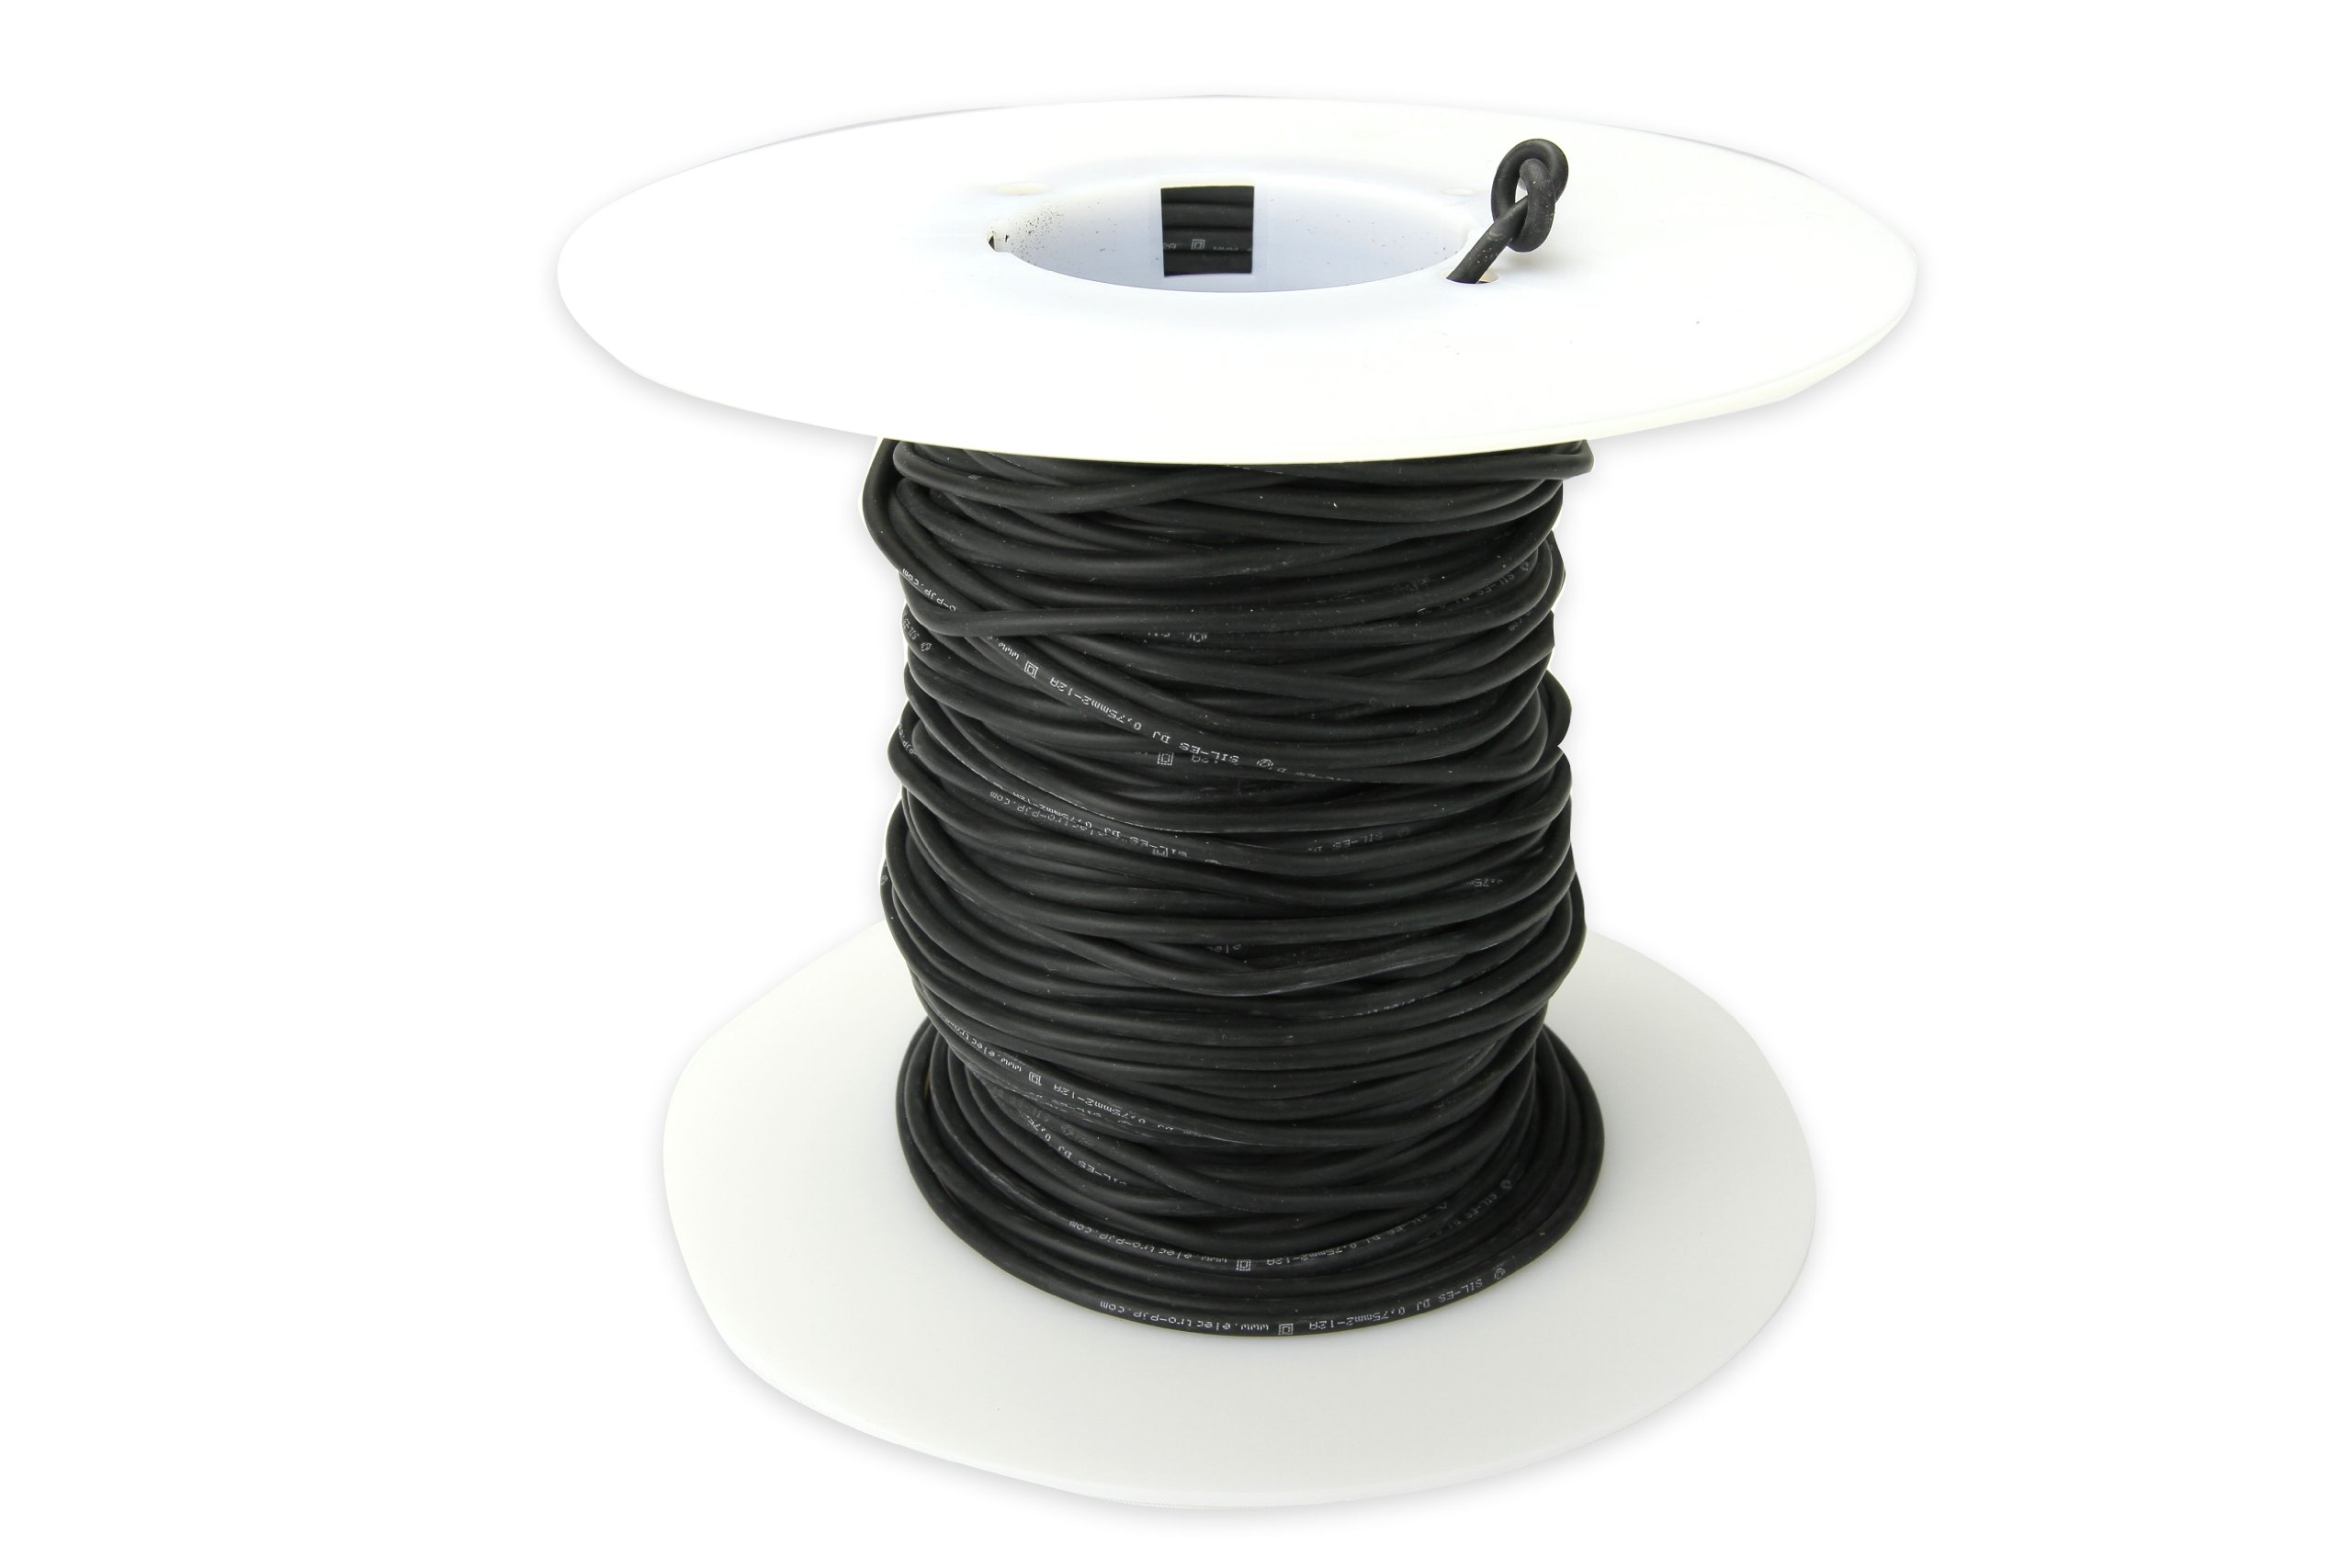 Cal Test Electronics CT2799 Test Lead Wire, 21 AWG, 12 Amp, Silicone Jacket, 0.75 sq mm, 10m Length, Black